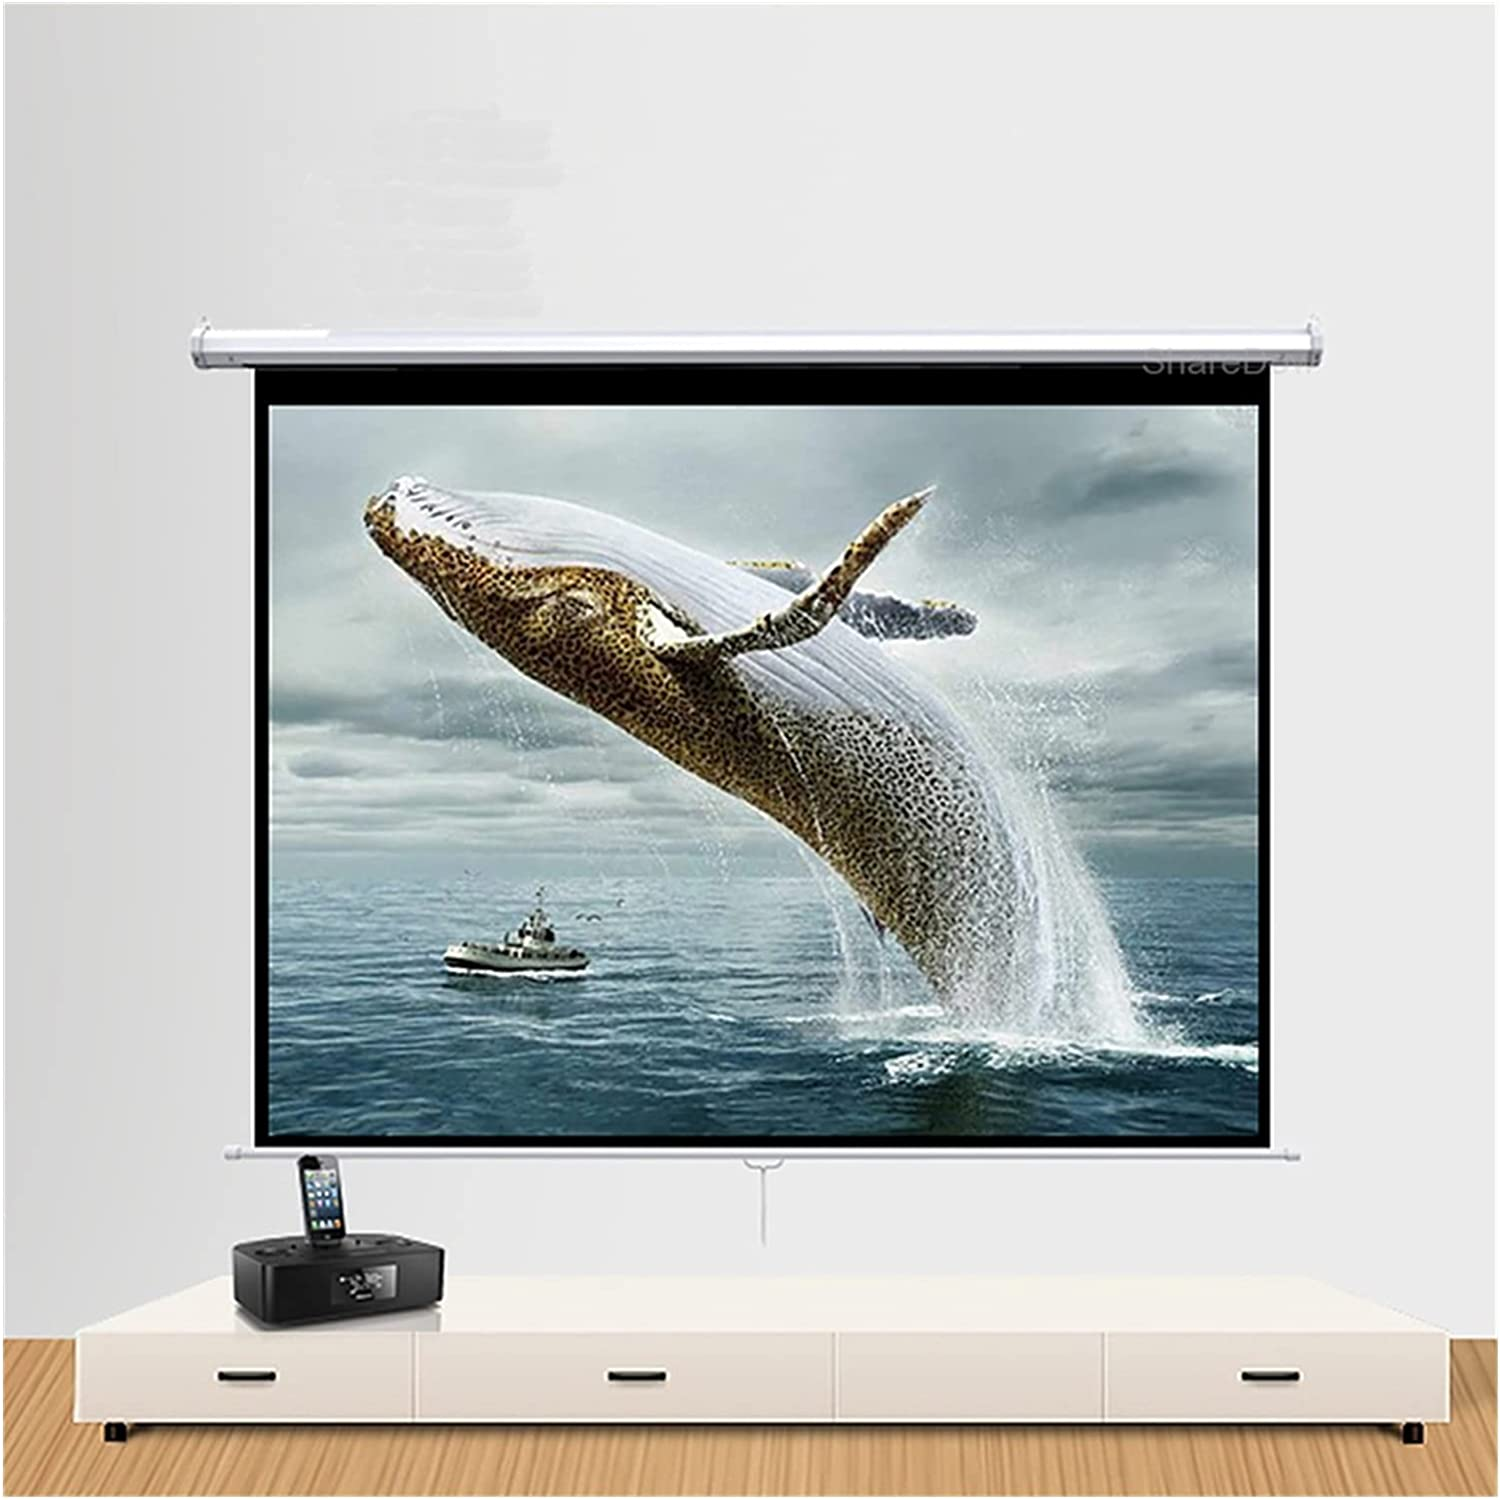 DSFEOIGY Manual Pull Down Projector Screen 60 72 84 100 Inch 16:9 HD Widescreen Retractable Auto-Locking Portable Projection Screen (Size : 60 inch)